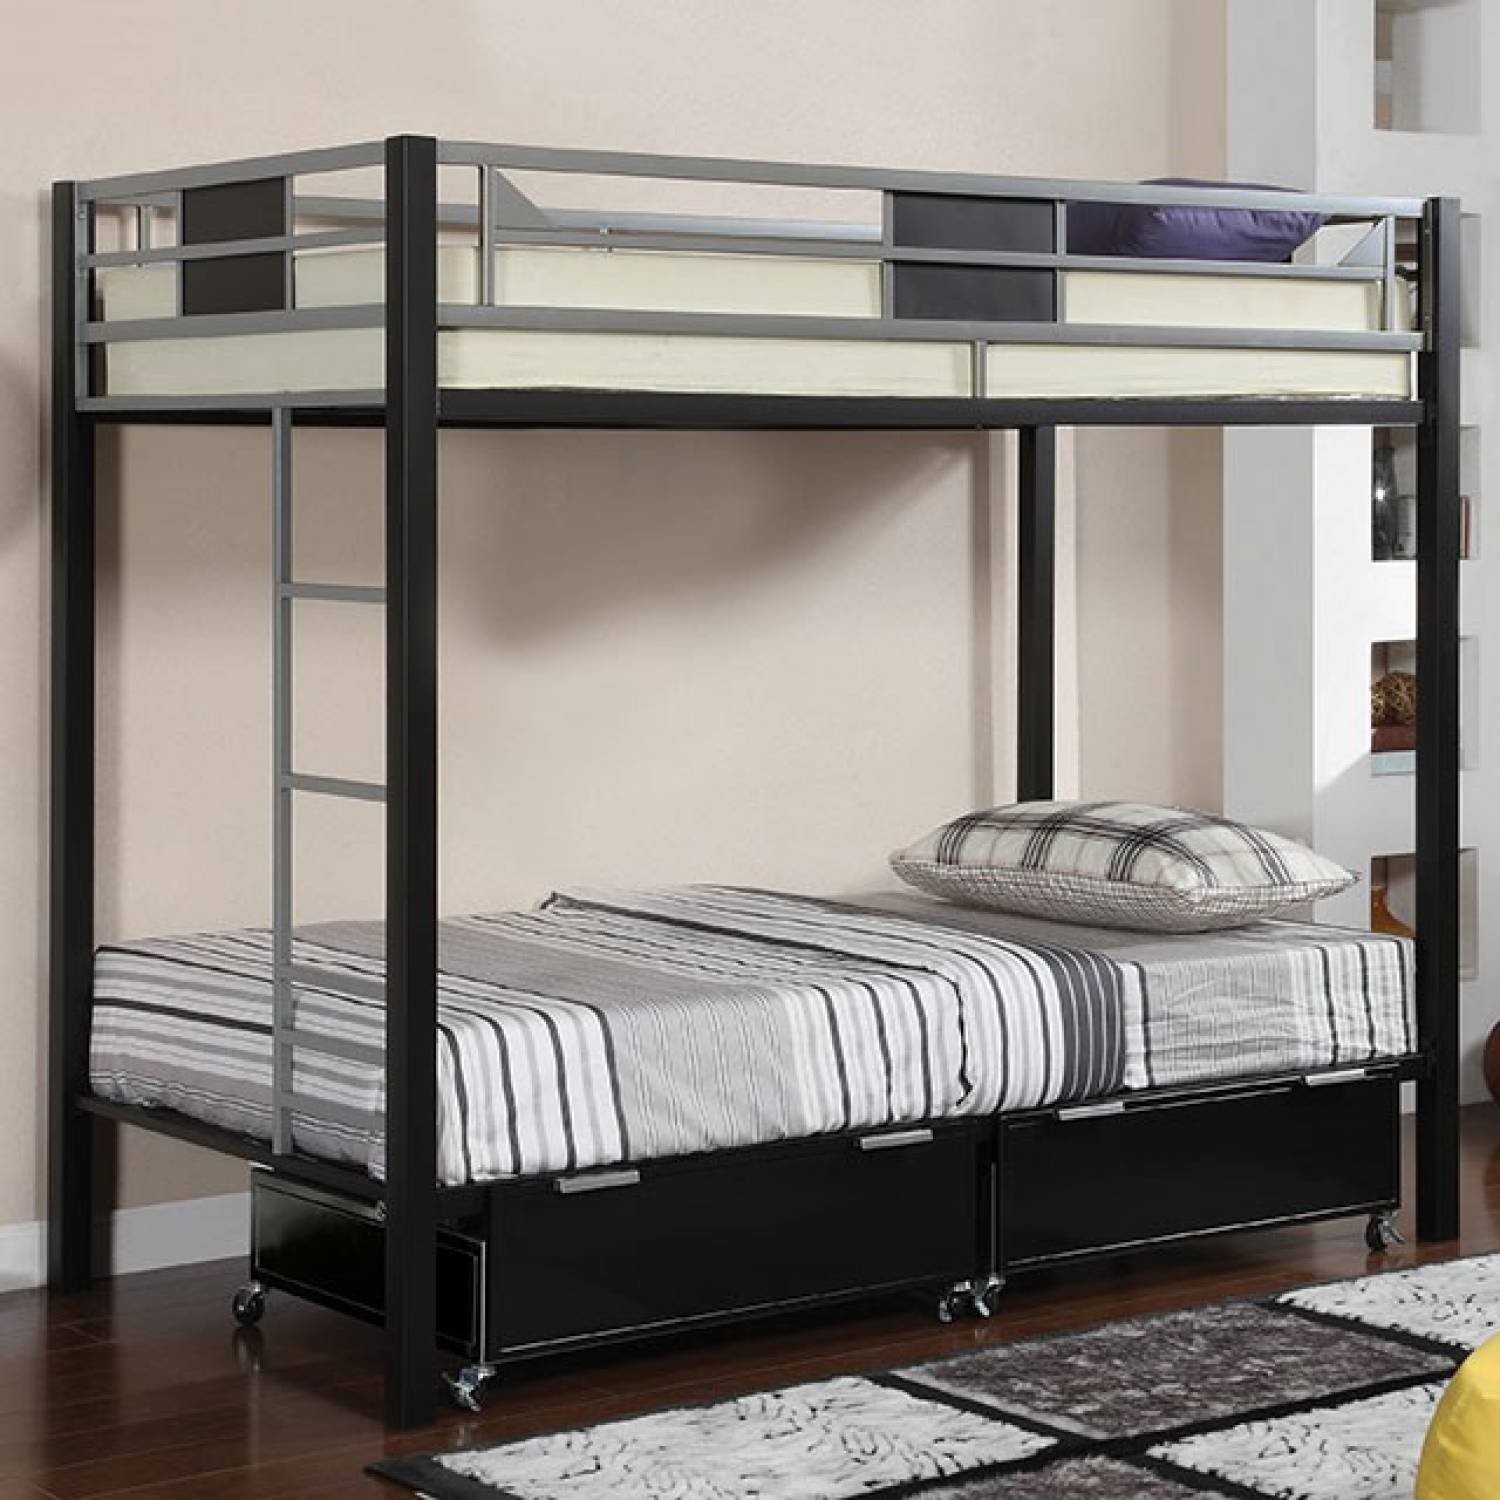 dante bed with shipping of free base america contemporary loft overstock futon bunk home futons furniture today product garden